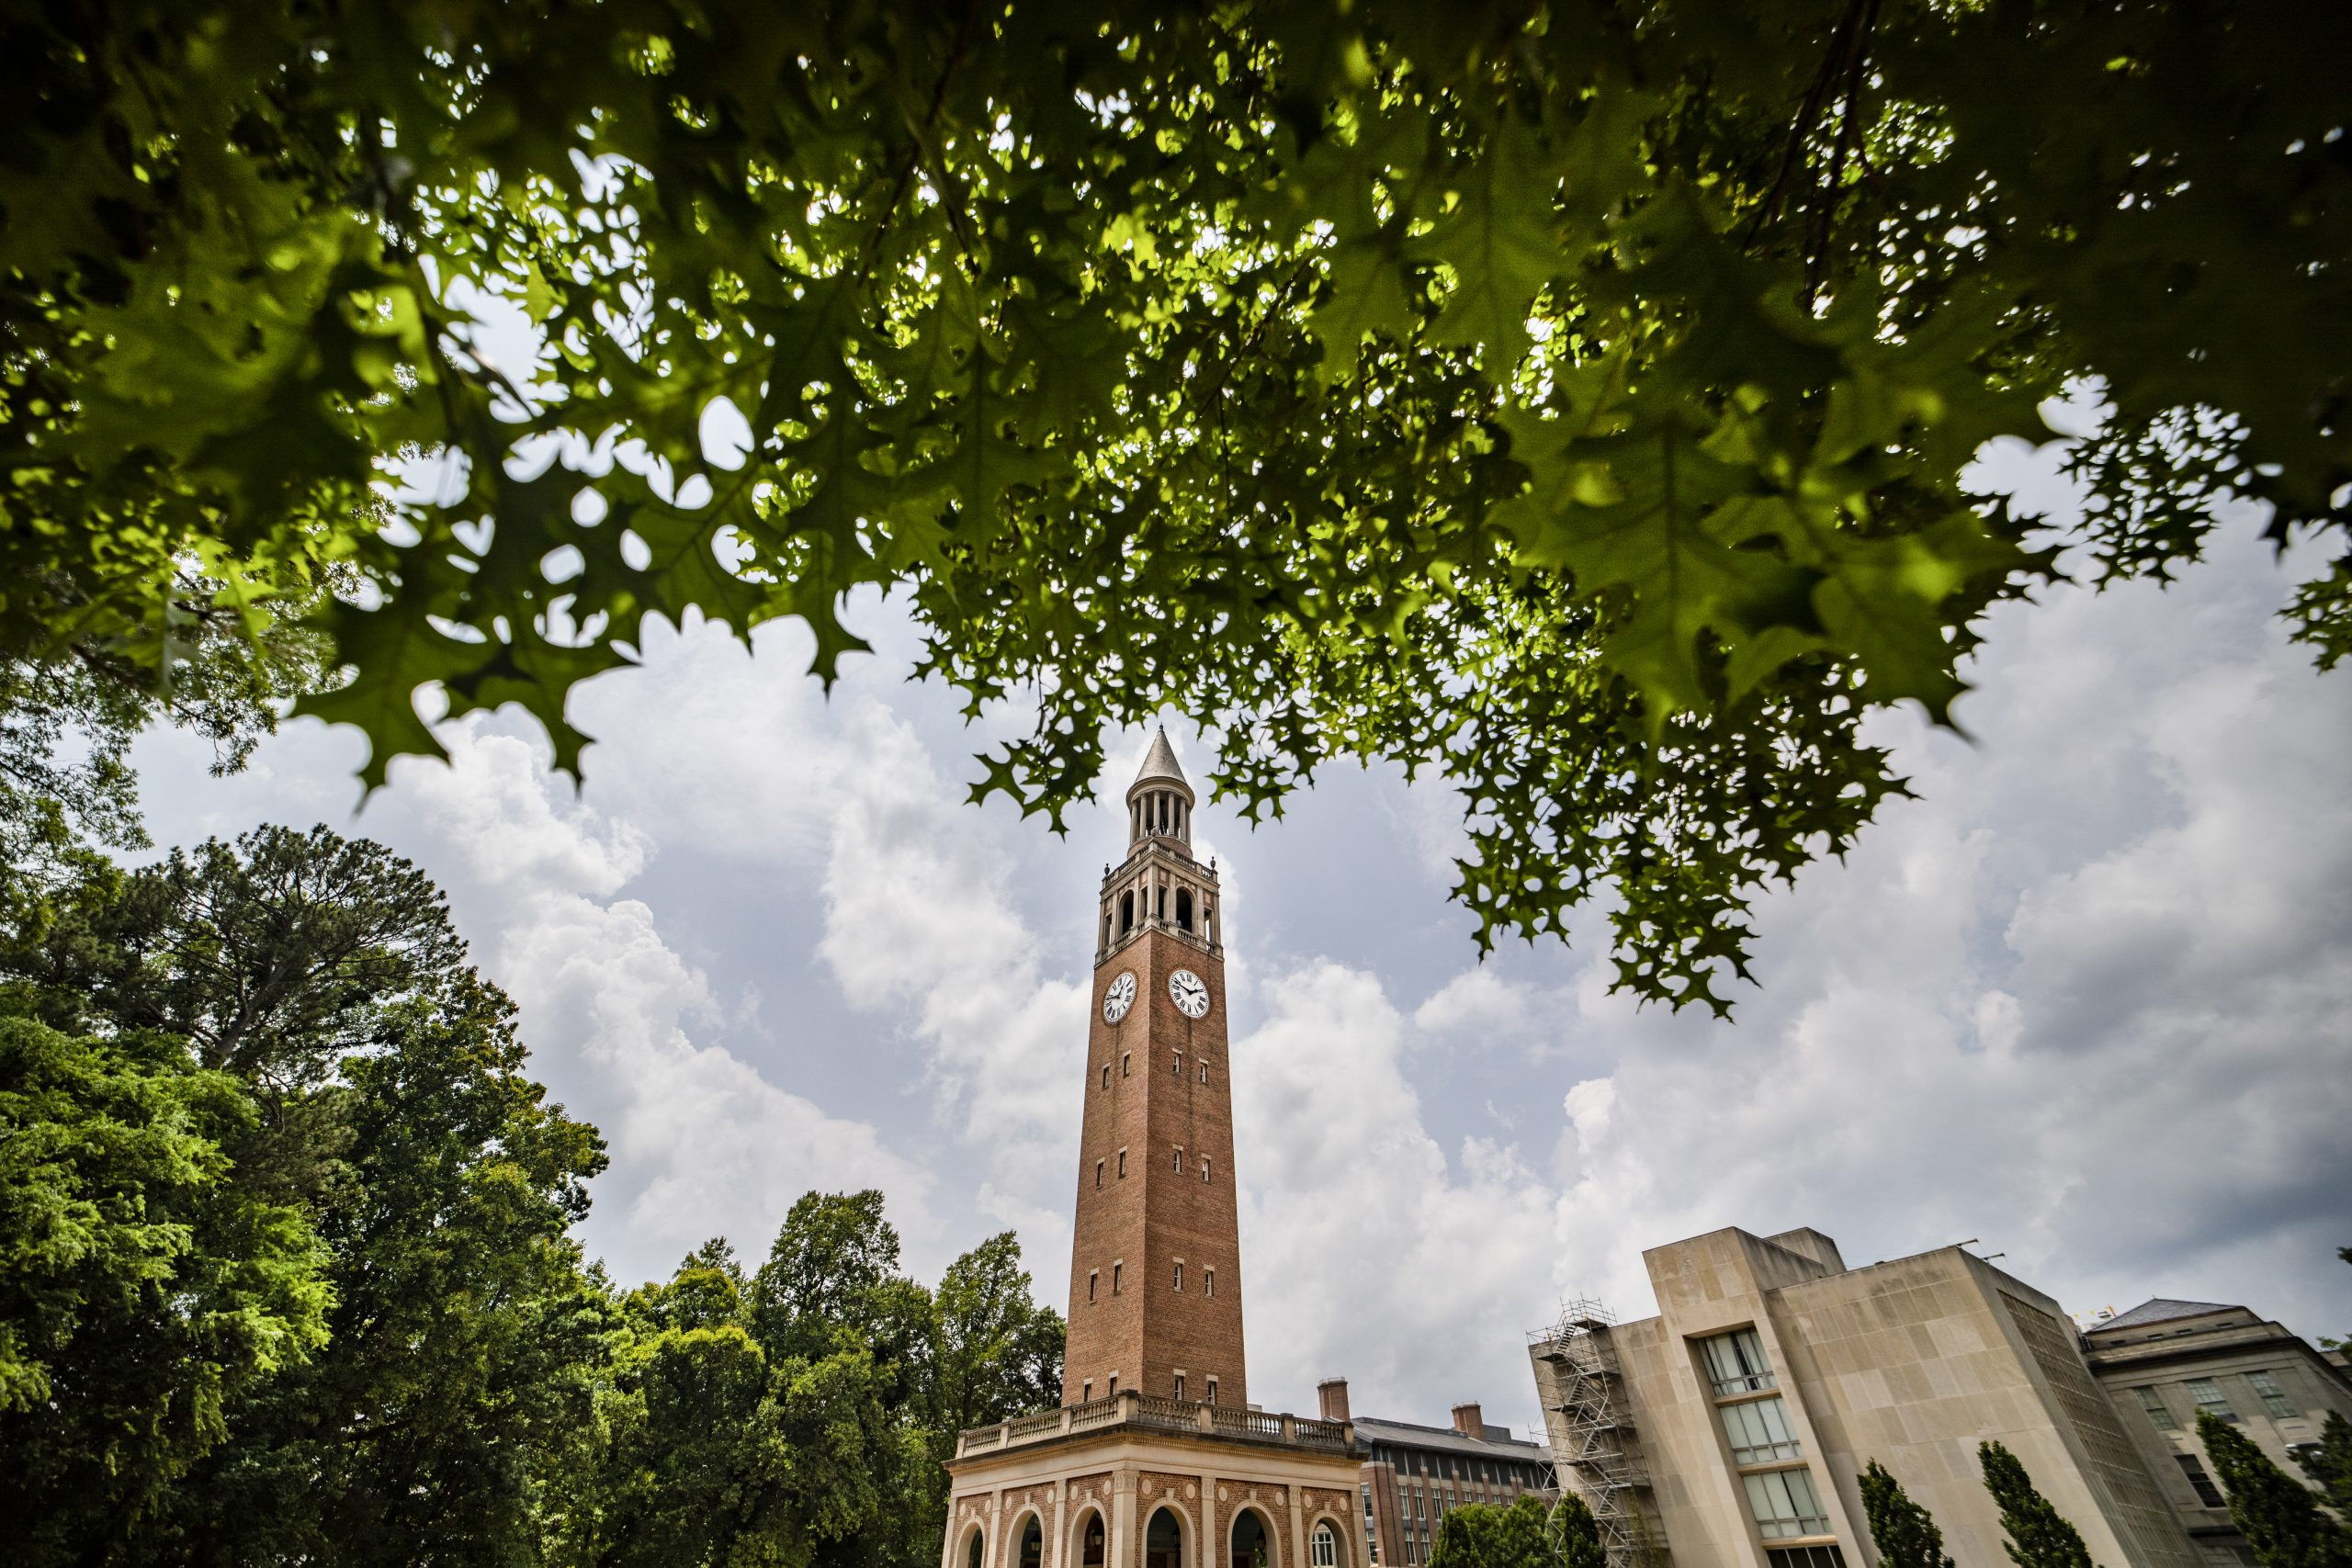 The Bell Tower is framed by leaves from a tree